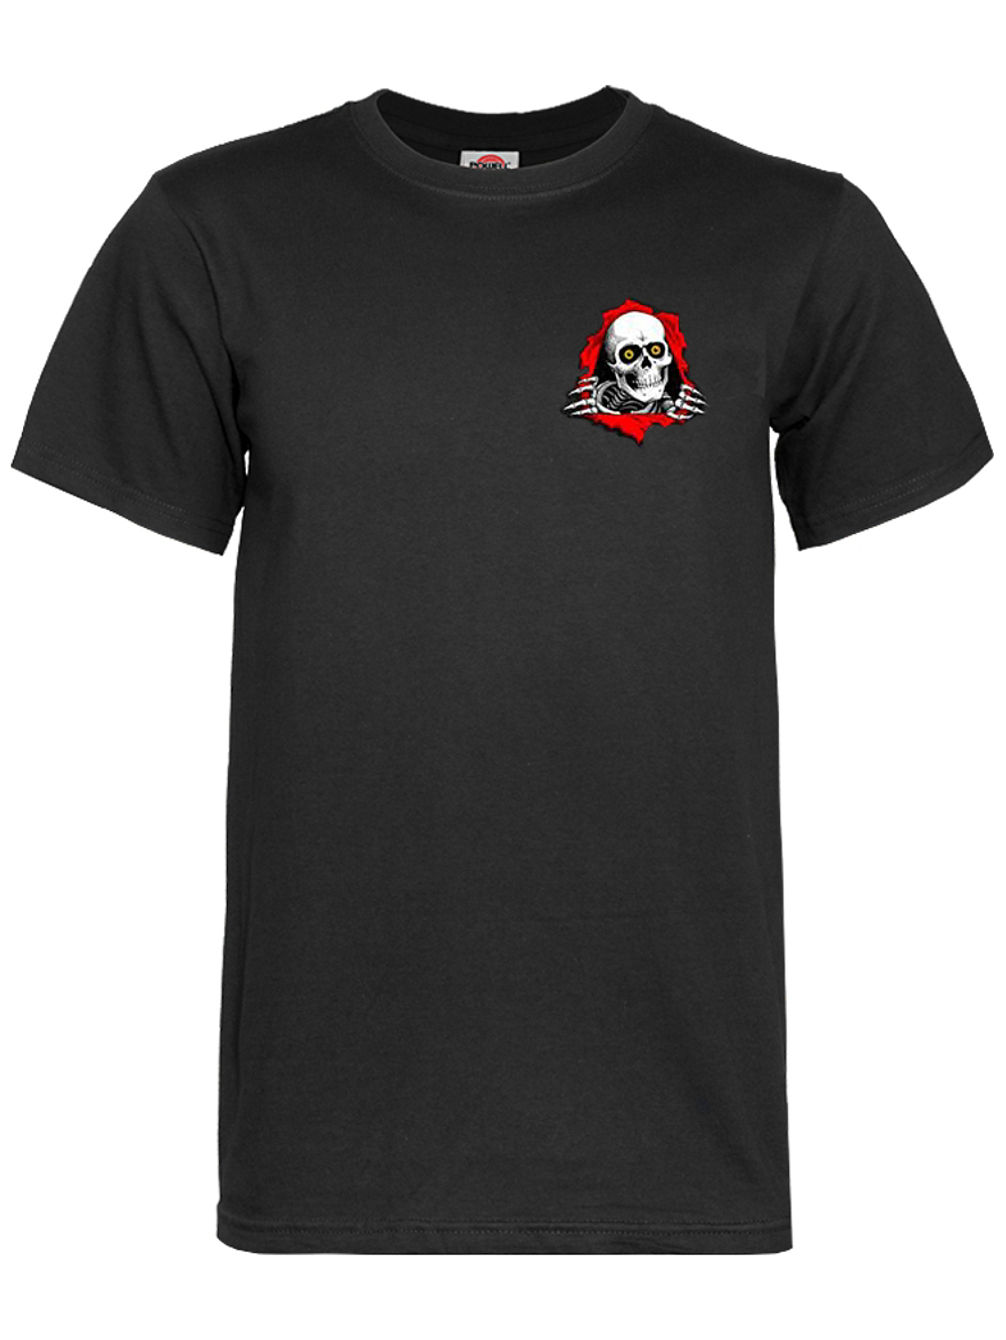 powell-peralta-support-your-local-skate-shop-t-shirt